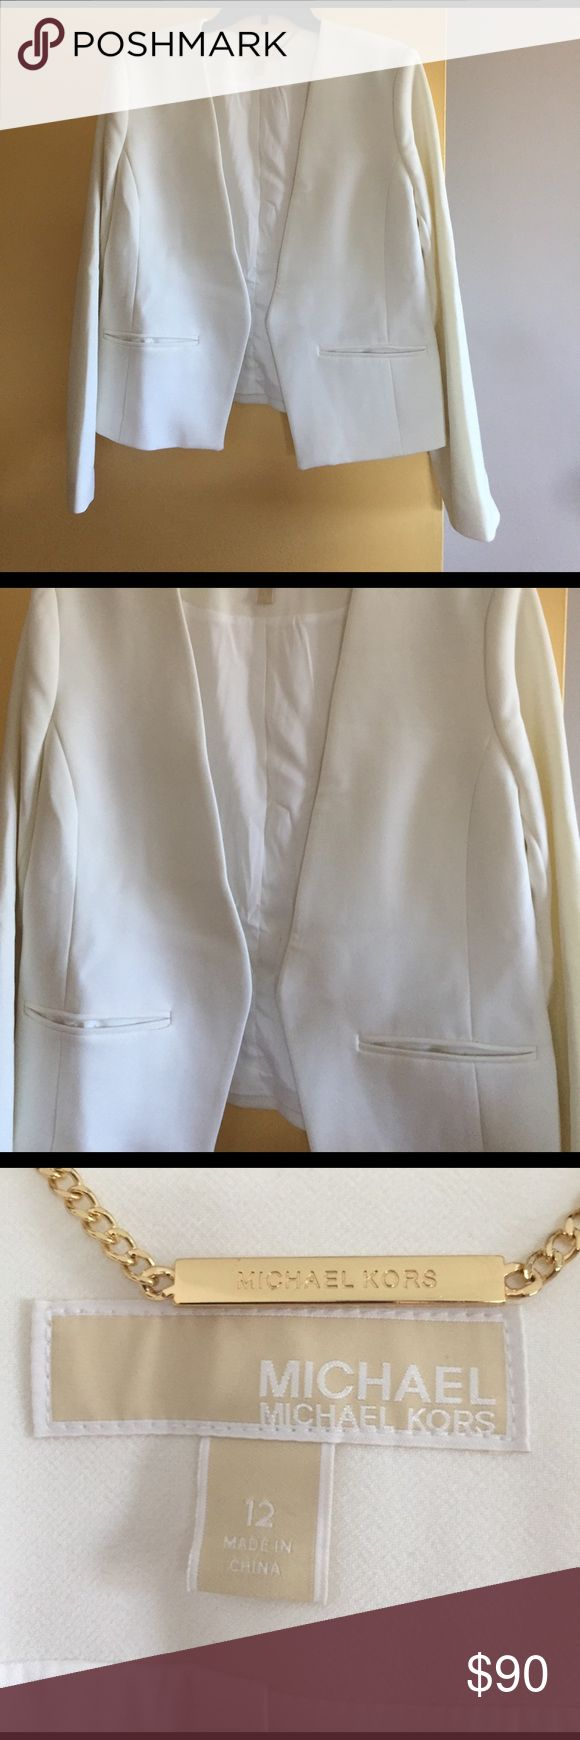 Michael Kors all white open blazer Michael Kors open blazer with front pockets. Michael Kors Jackets & Coats Blazers